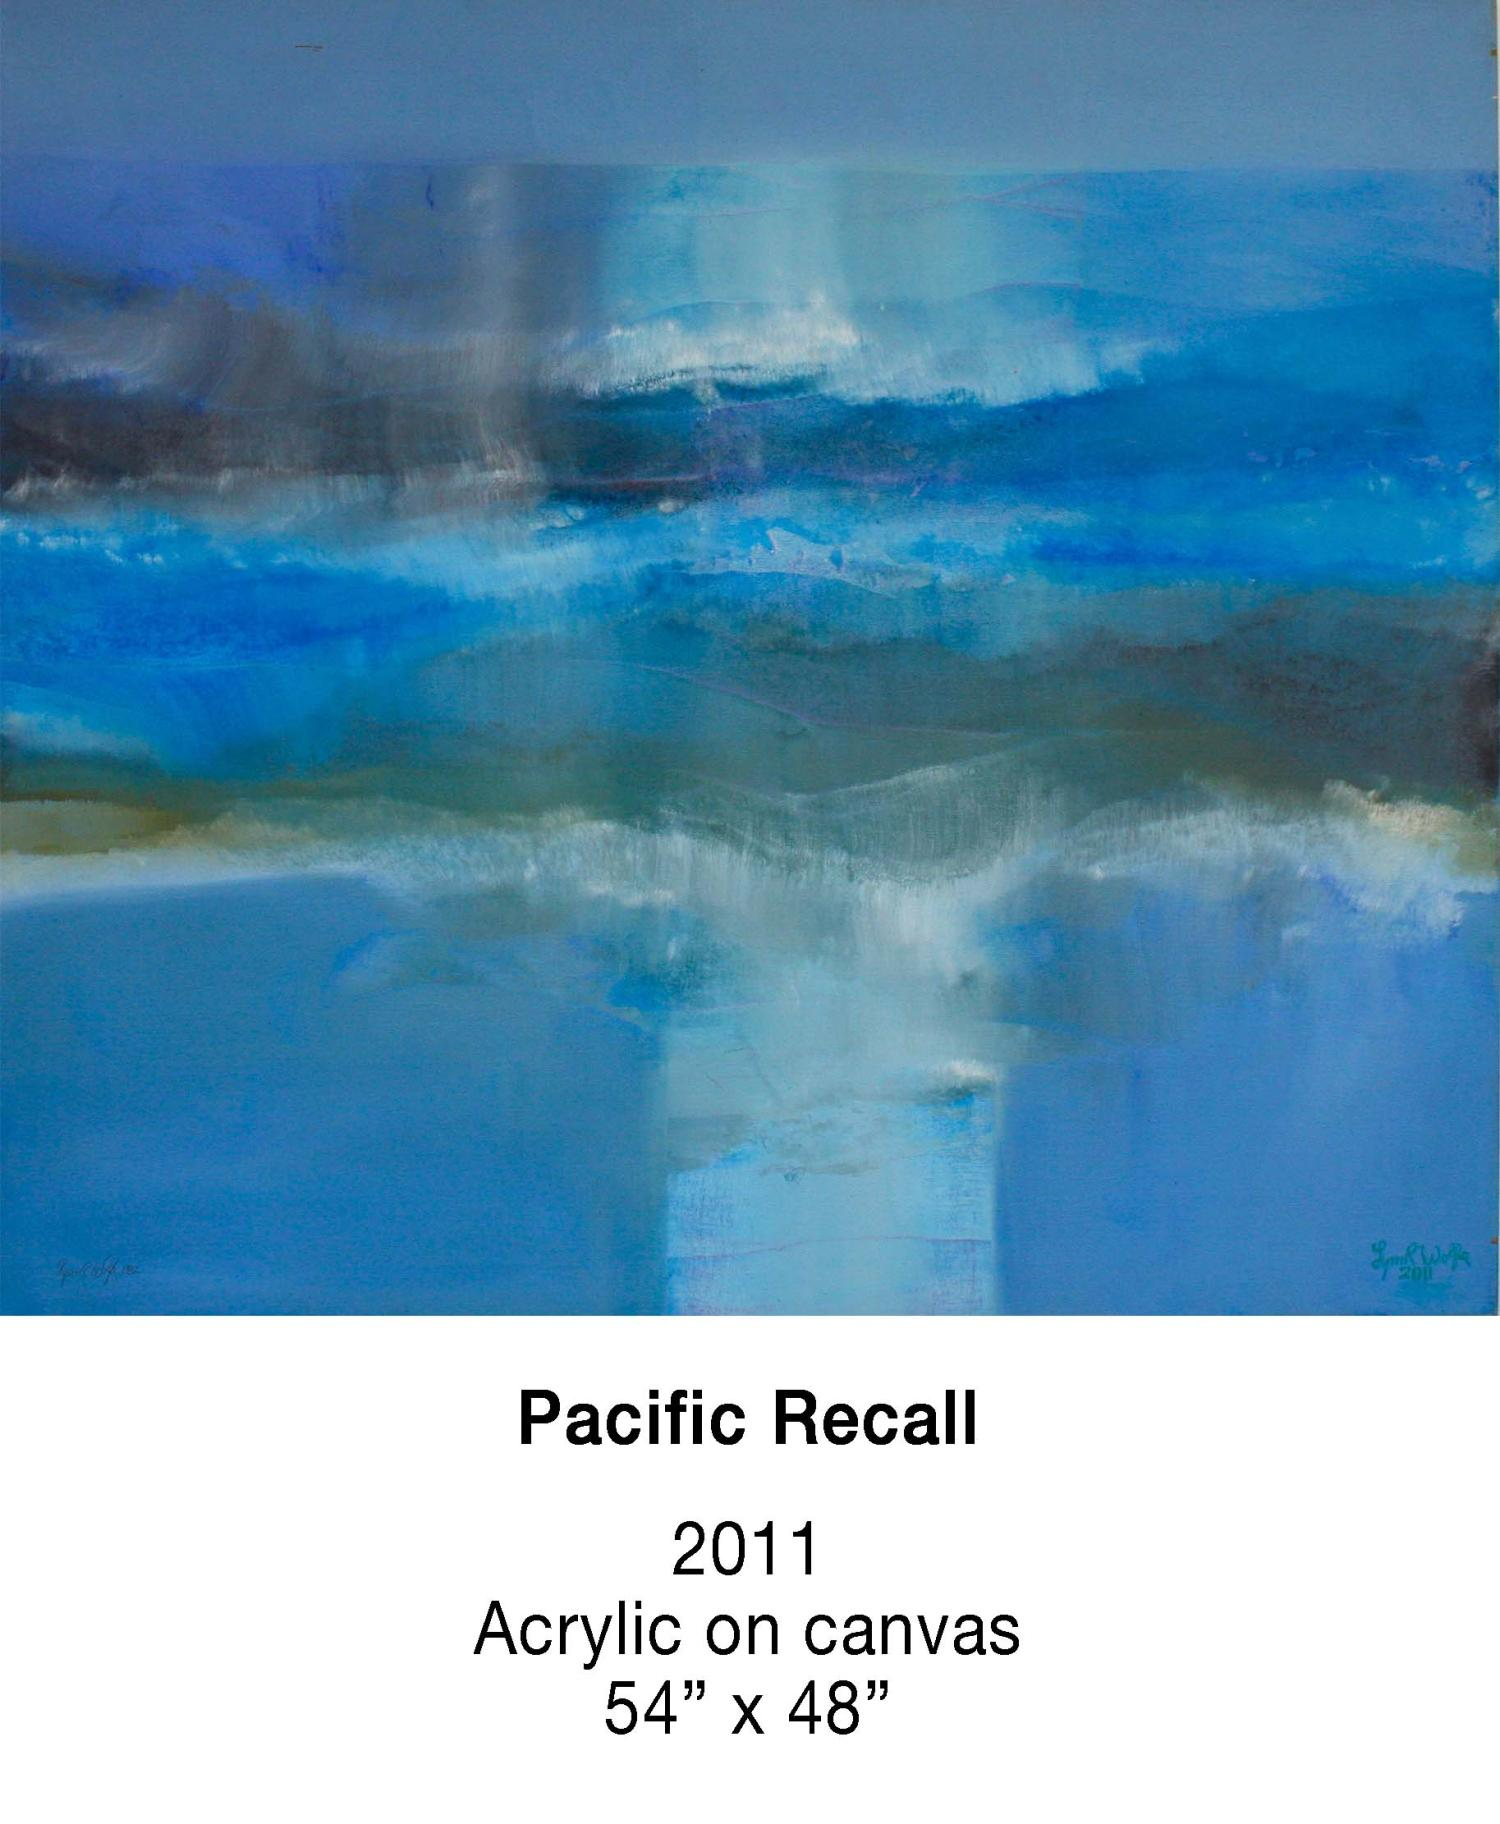 Pacific Recall